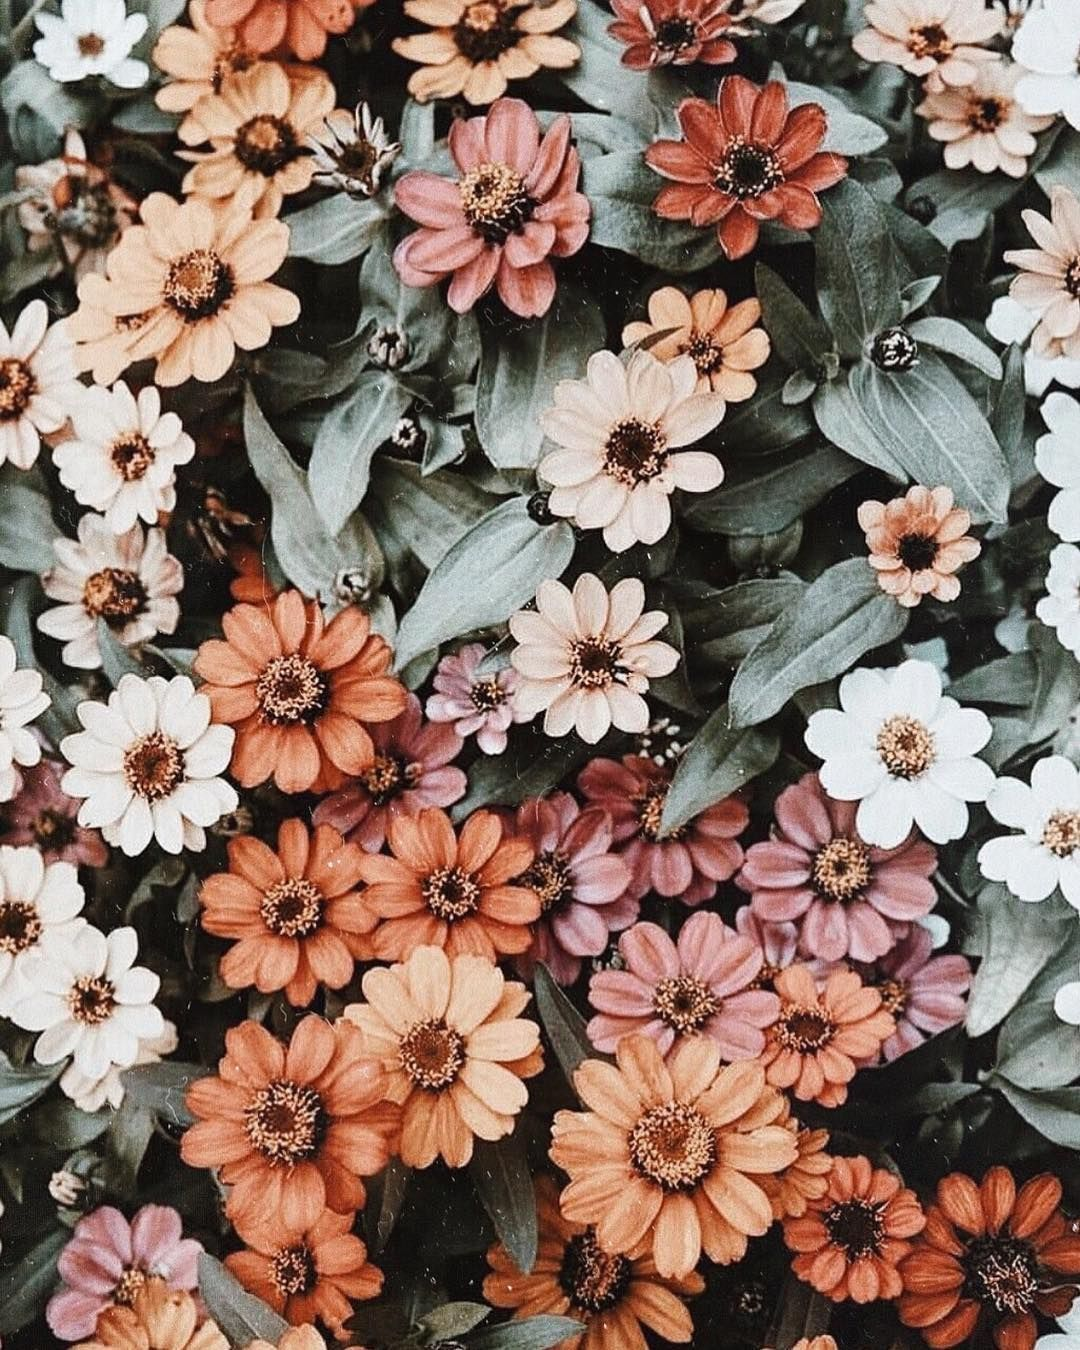 Aesthetic Hd Iphone Wallpapers Flowers In 2020 Flower Aesthetic Spring Desktop Wallpaper Flower Desktop Wallpaper